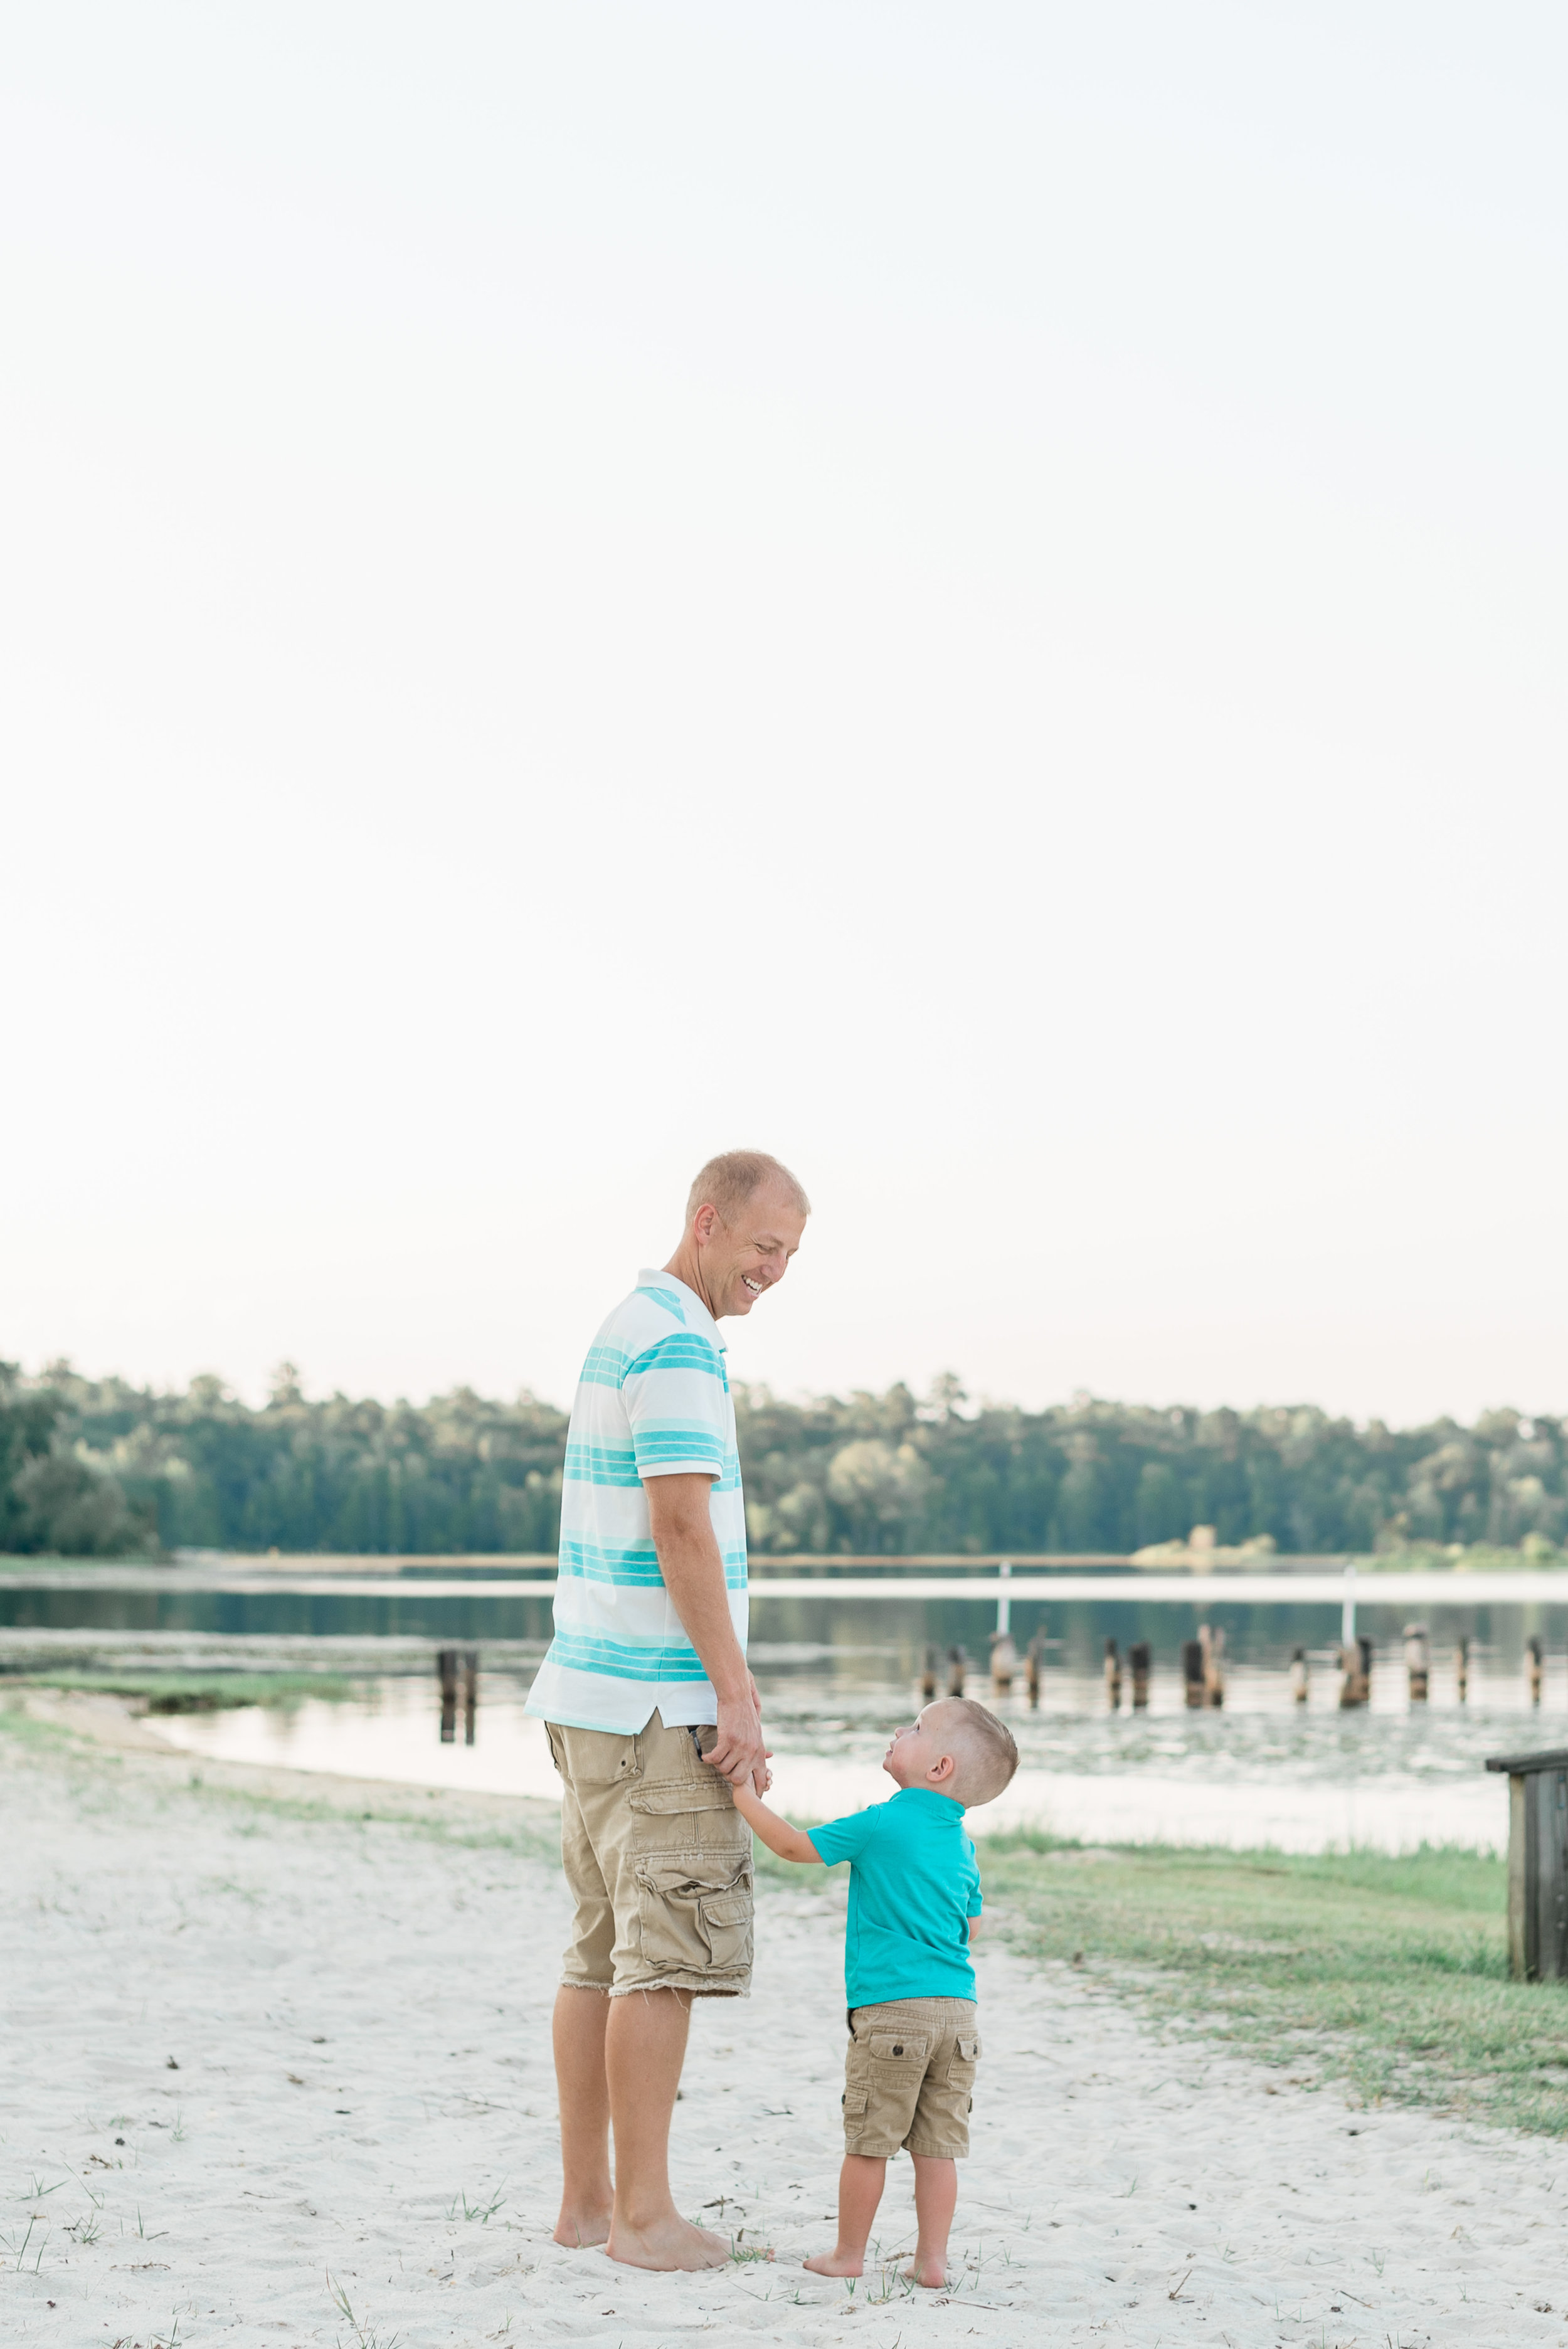 Killian & Sean - This father and son shoot was absolutely adorable! Little Killian had a blast hanging out with daddy, running, playing, flying through the air, and fishing to finish off the night.These two are such a great pair!Scroll down to see all of the sweetness from this session!